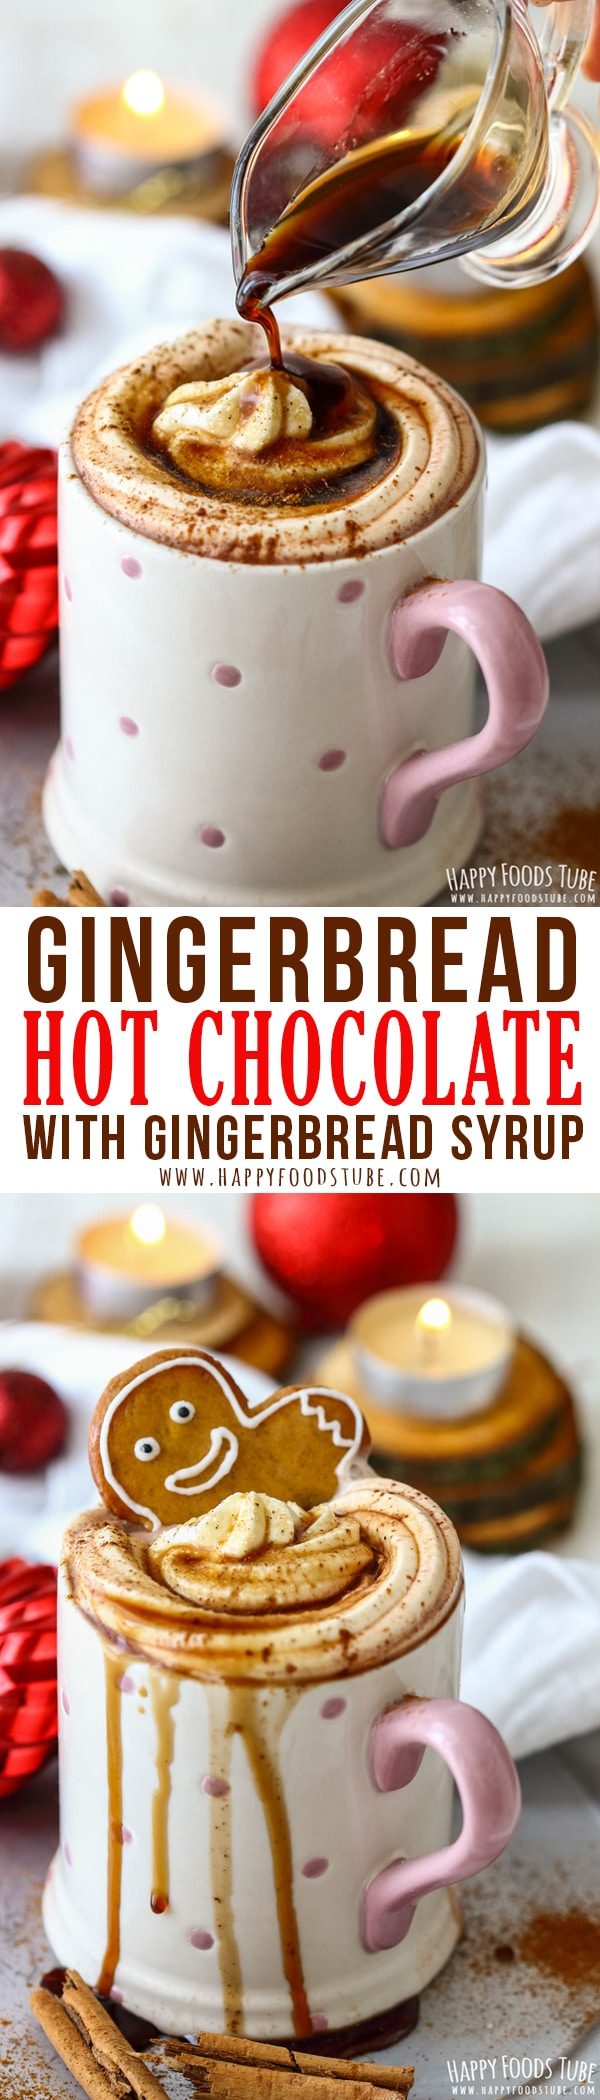 Homemade gingerbread hot chocolate is the perfect Christmas drink. This gingerbread spice infused hot chocolate warms you up & gets you into the festive mood. Holiday hot chocolate recipe. #gingerbread #hotchocolate #holidaydrinks #hotcocoa #recipe #gourmet #christmasdrinks #christmas #cocoa #xmas